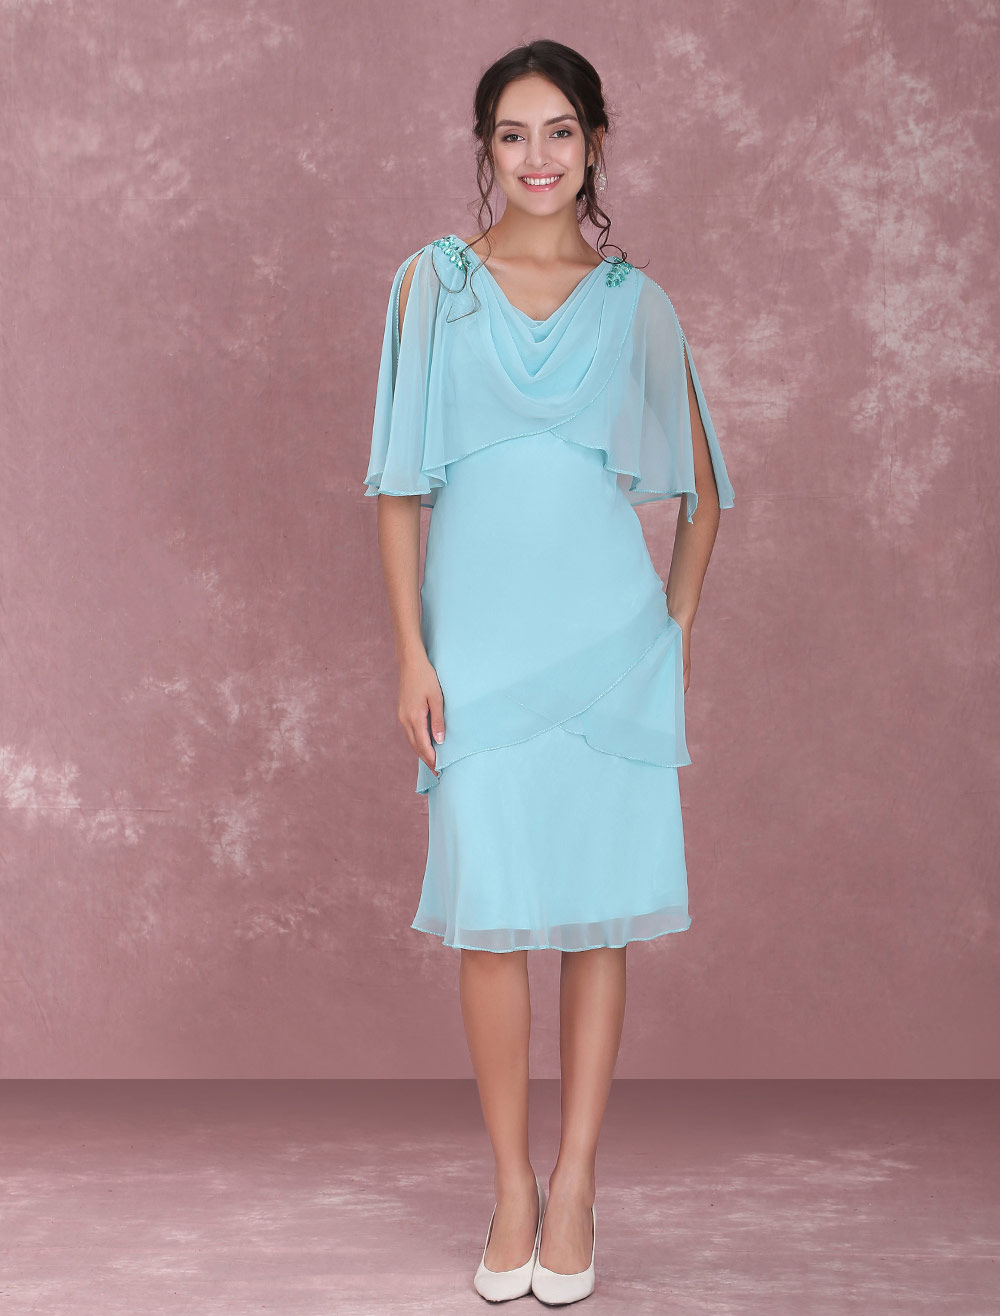 Buy Mother Of The Bride Dresses Mint Green Chiffon Cocktail Dress Tiered Cowl Neck Split Sleeve Wedding Guest Dresses for $123.24 in Milanoo store